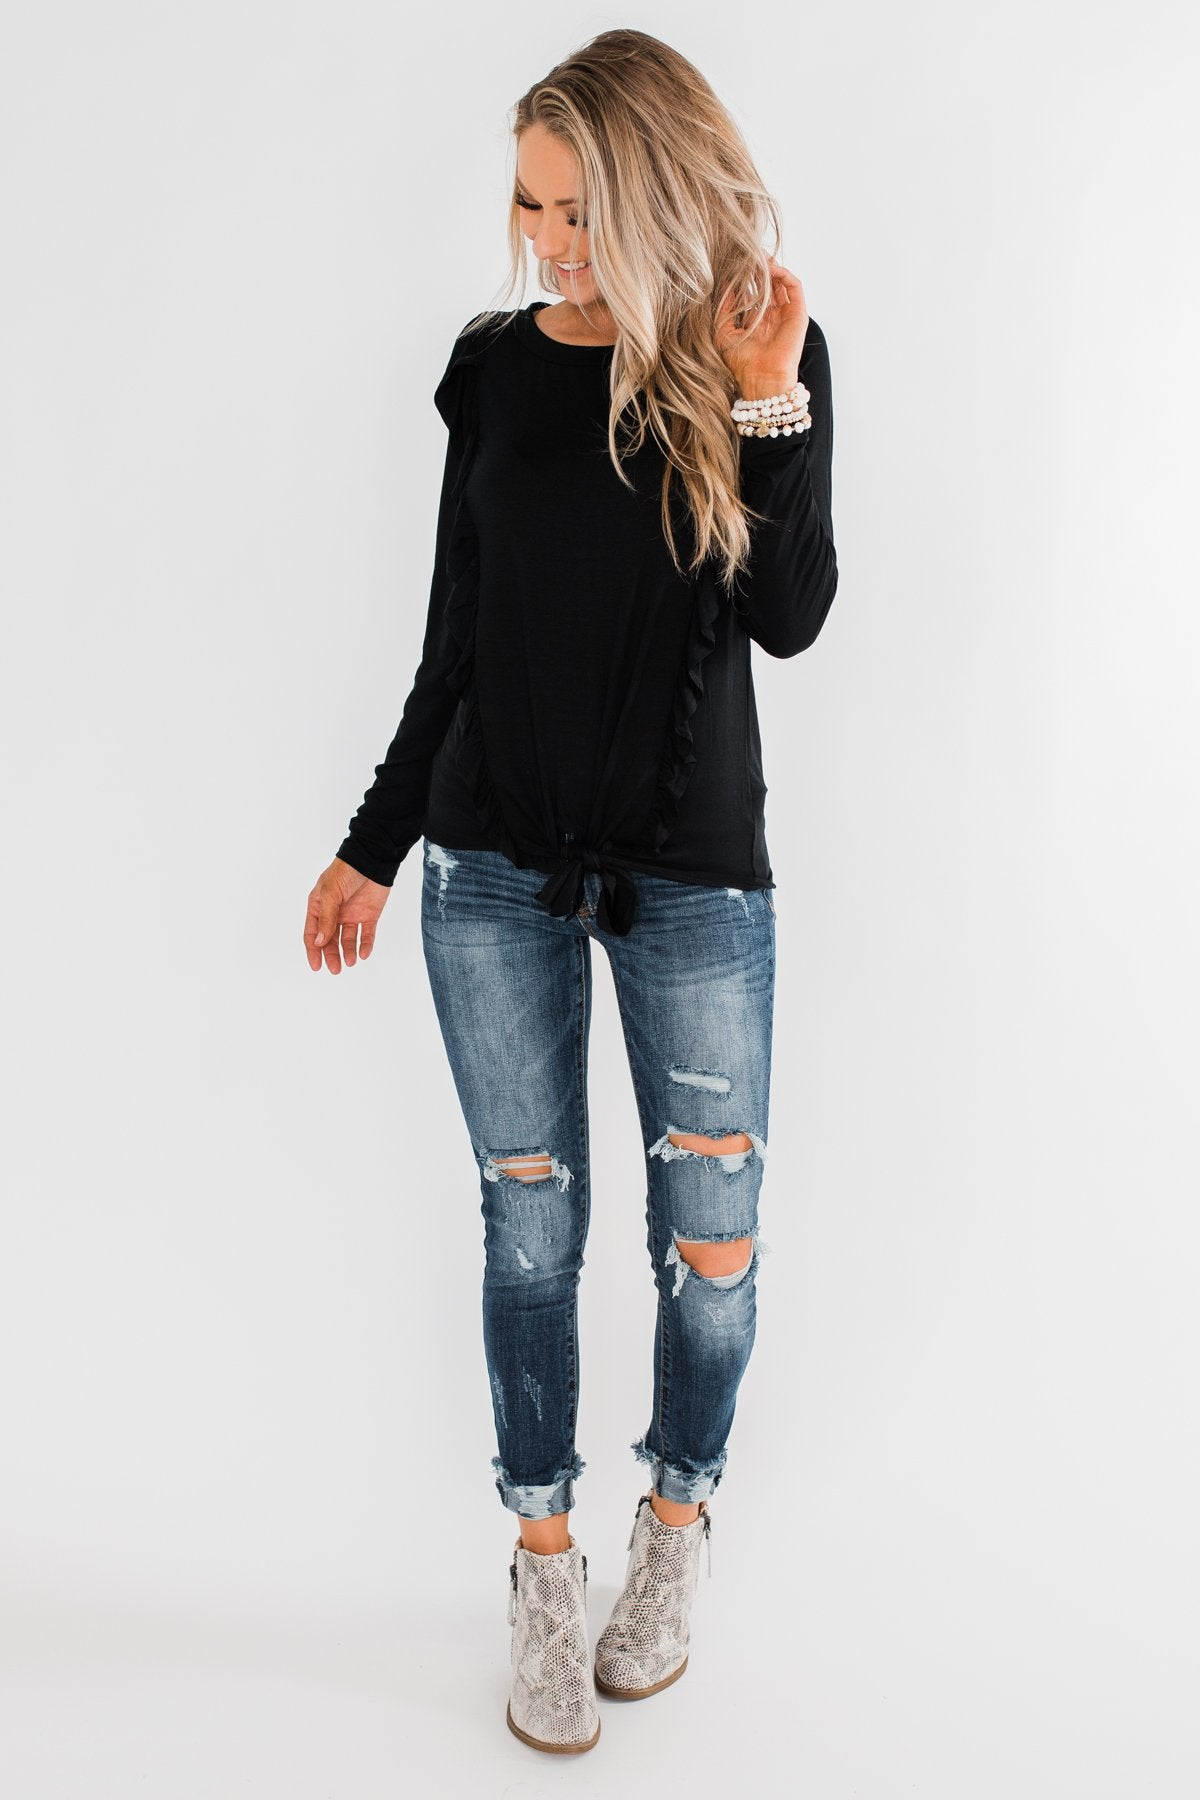 Taking My Time Long Sleeve Ruffle Top- Black